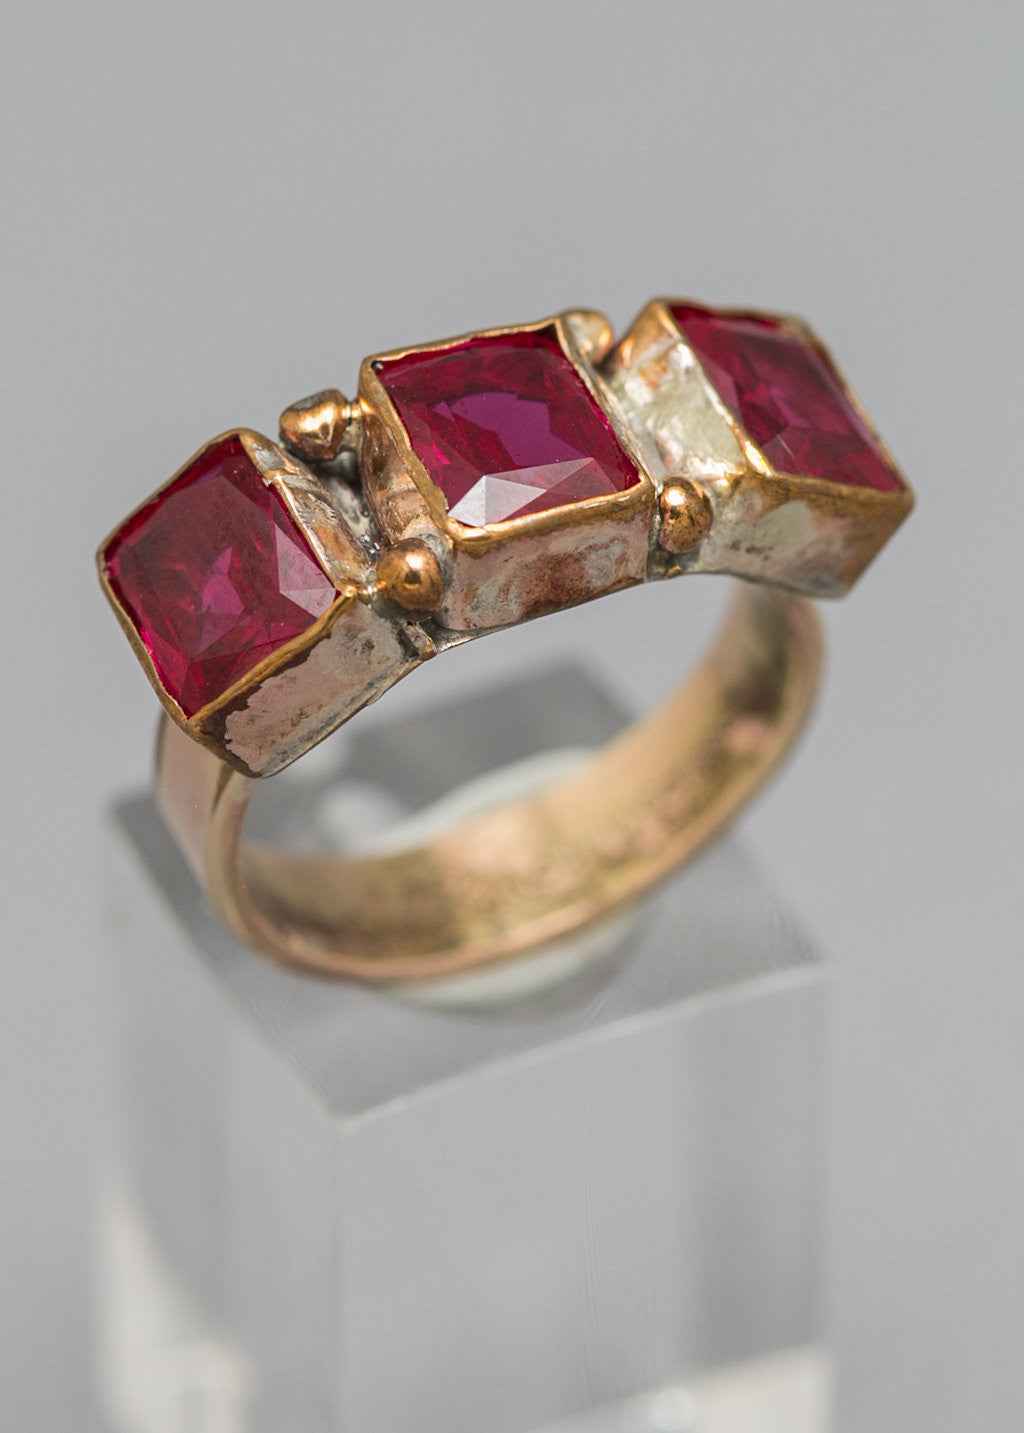 Rubies galore ring